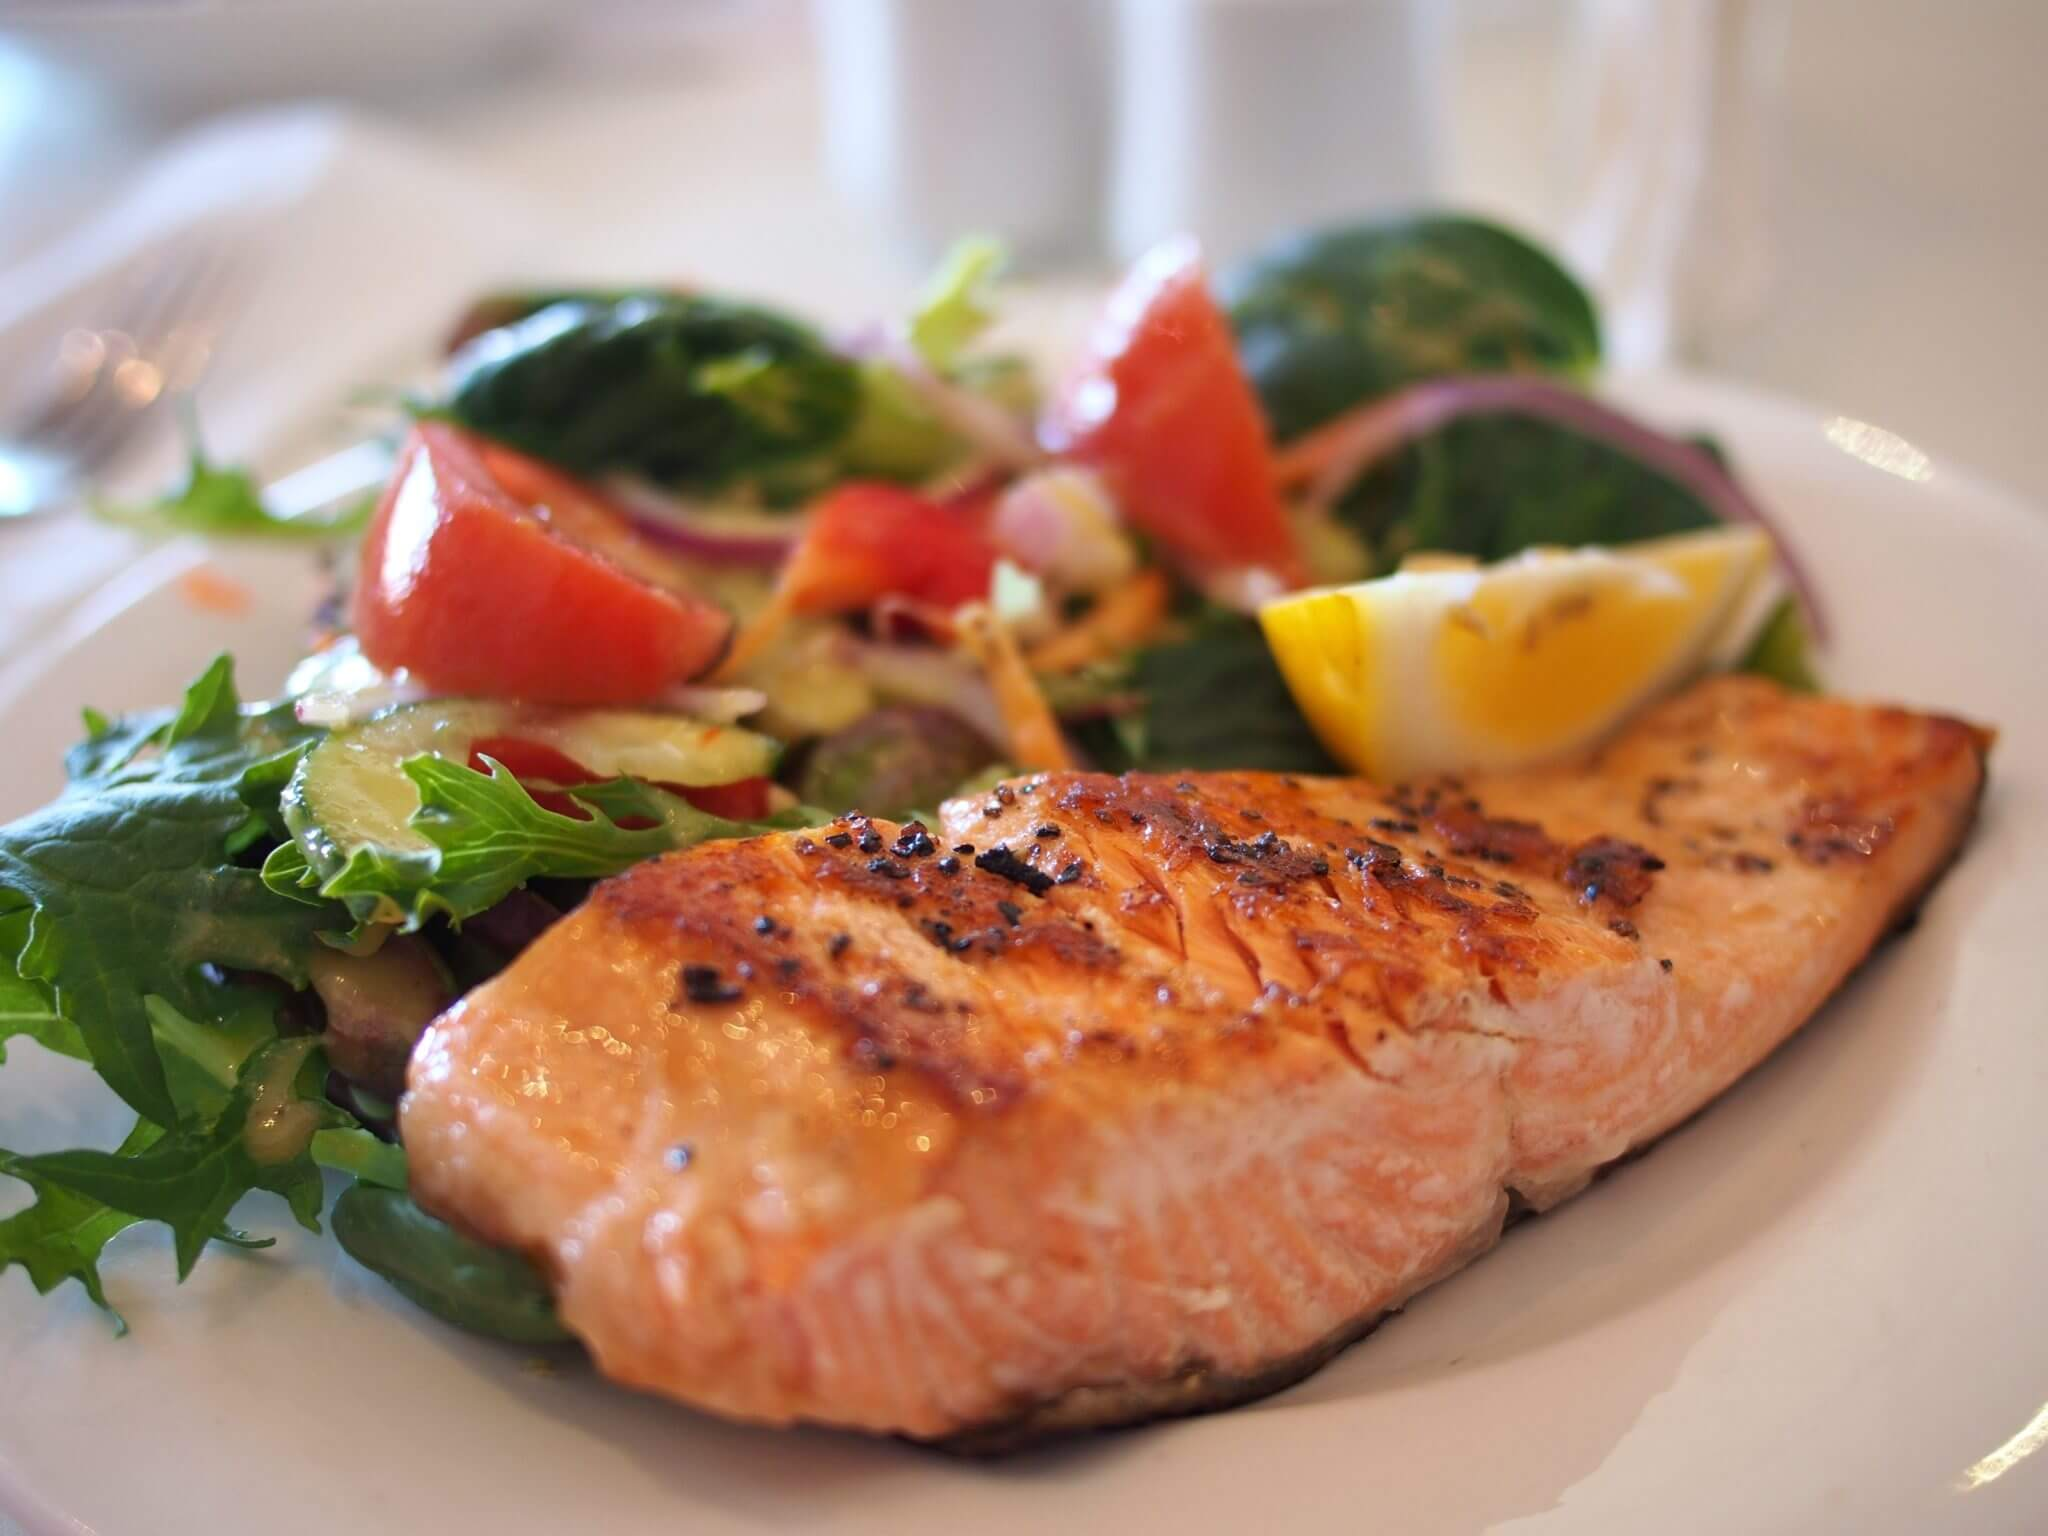 Health priority for dads: Choose nourishing foods